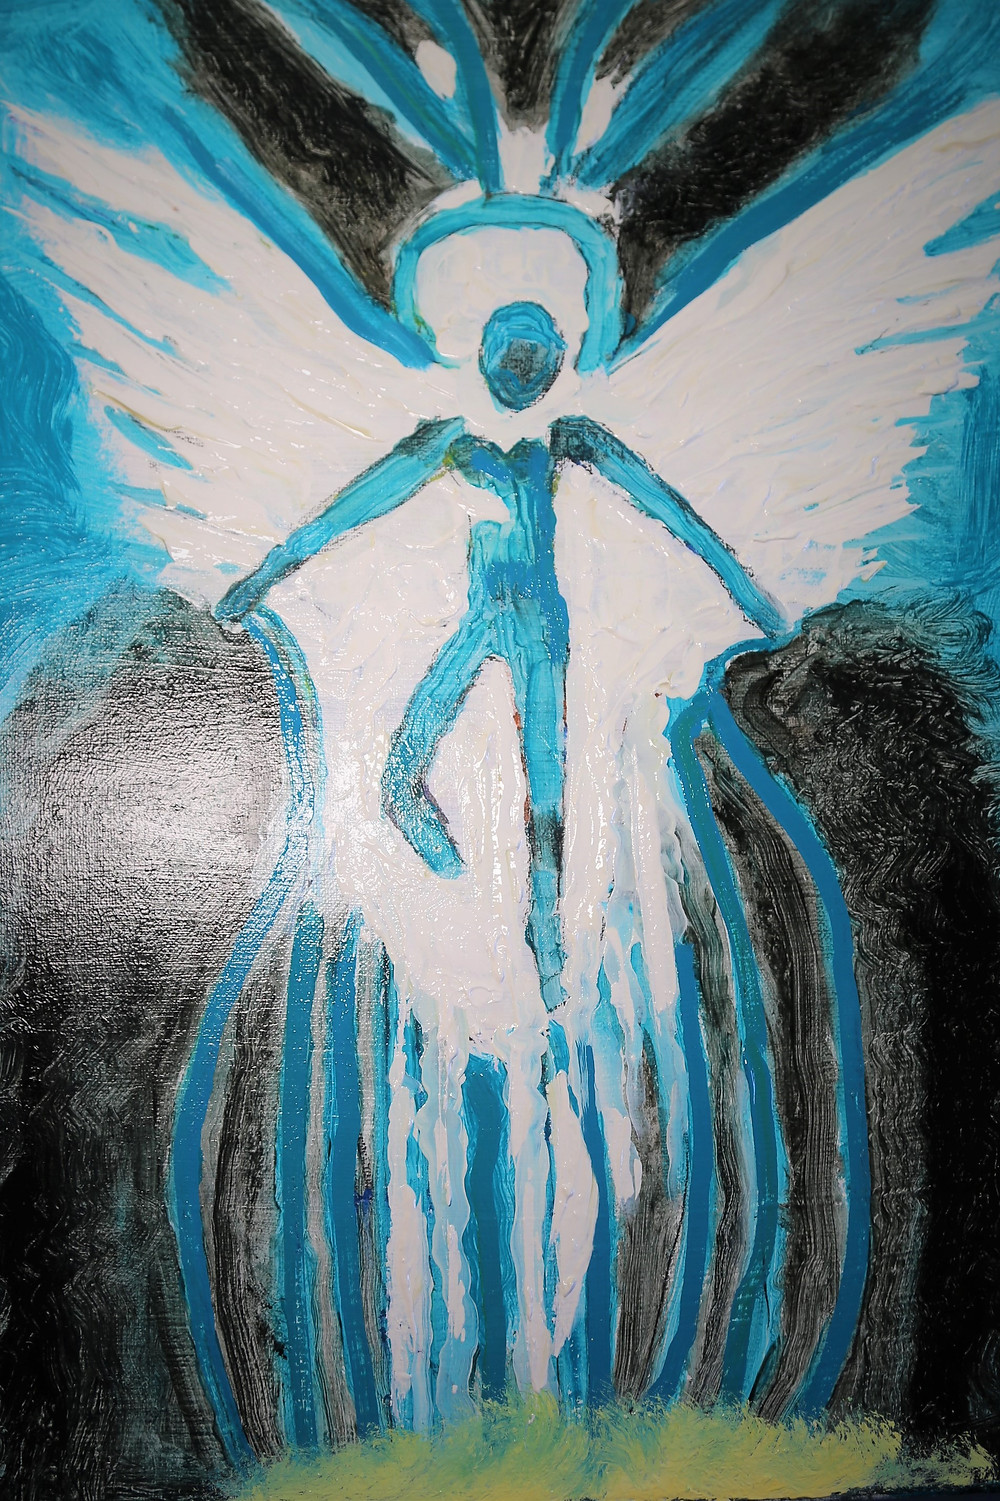 Angel image from a dream i had recently.